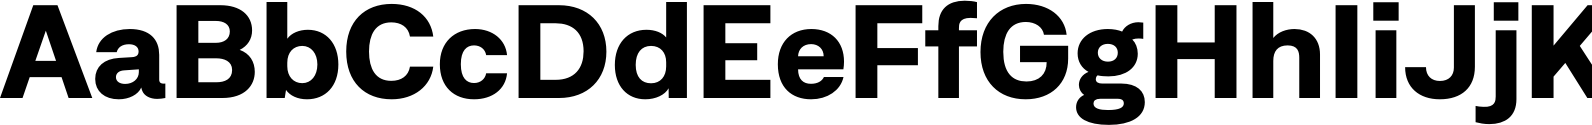 Neufile Grotesk ExtraBold Extended Font